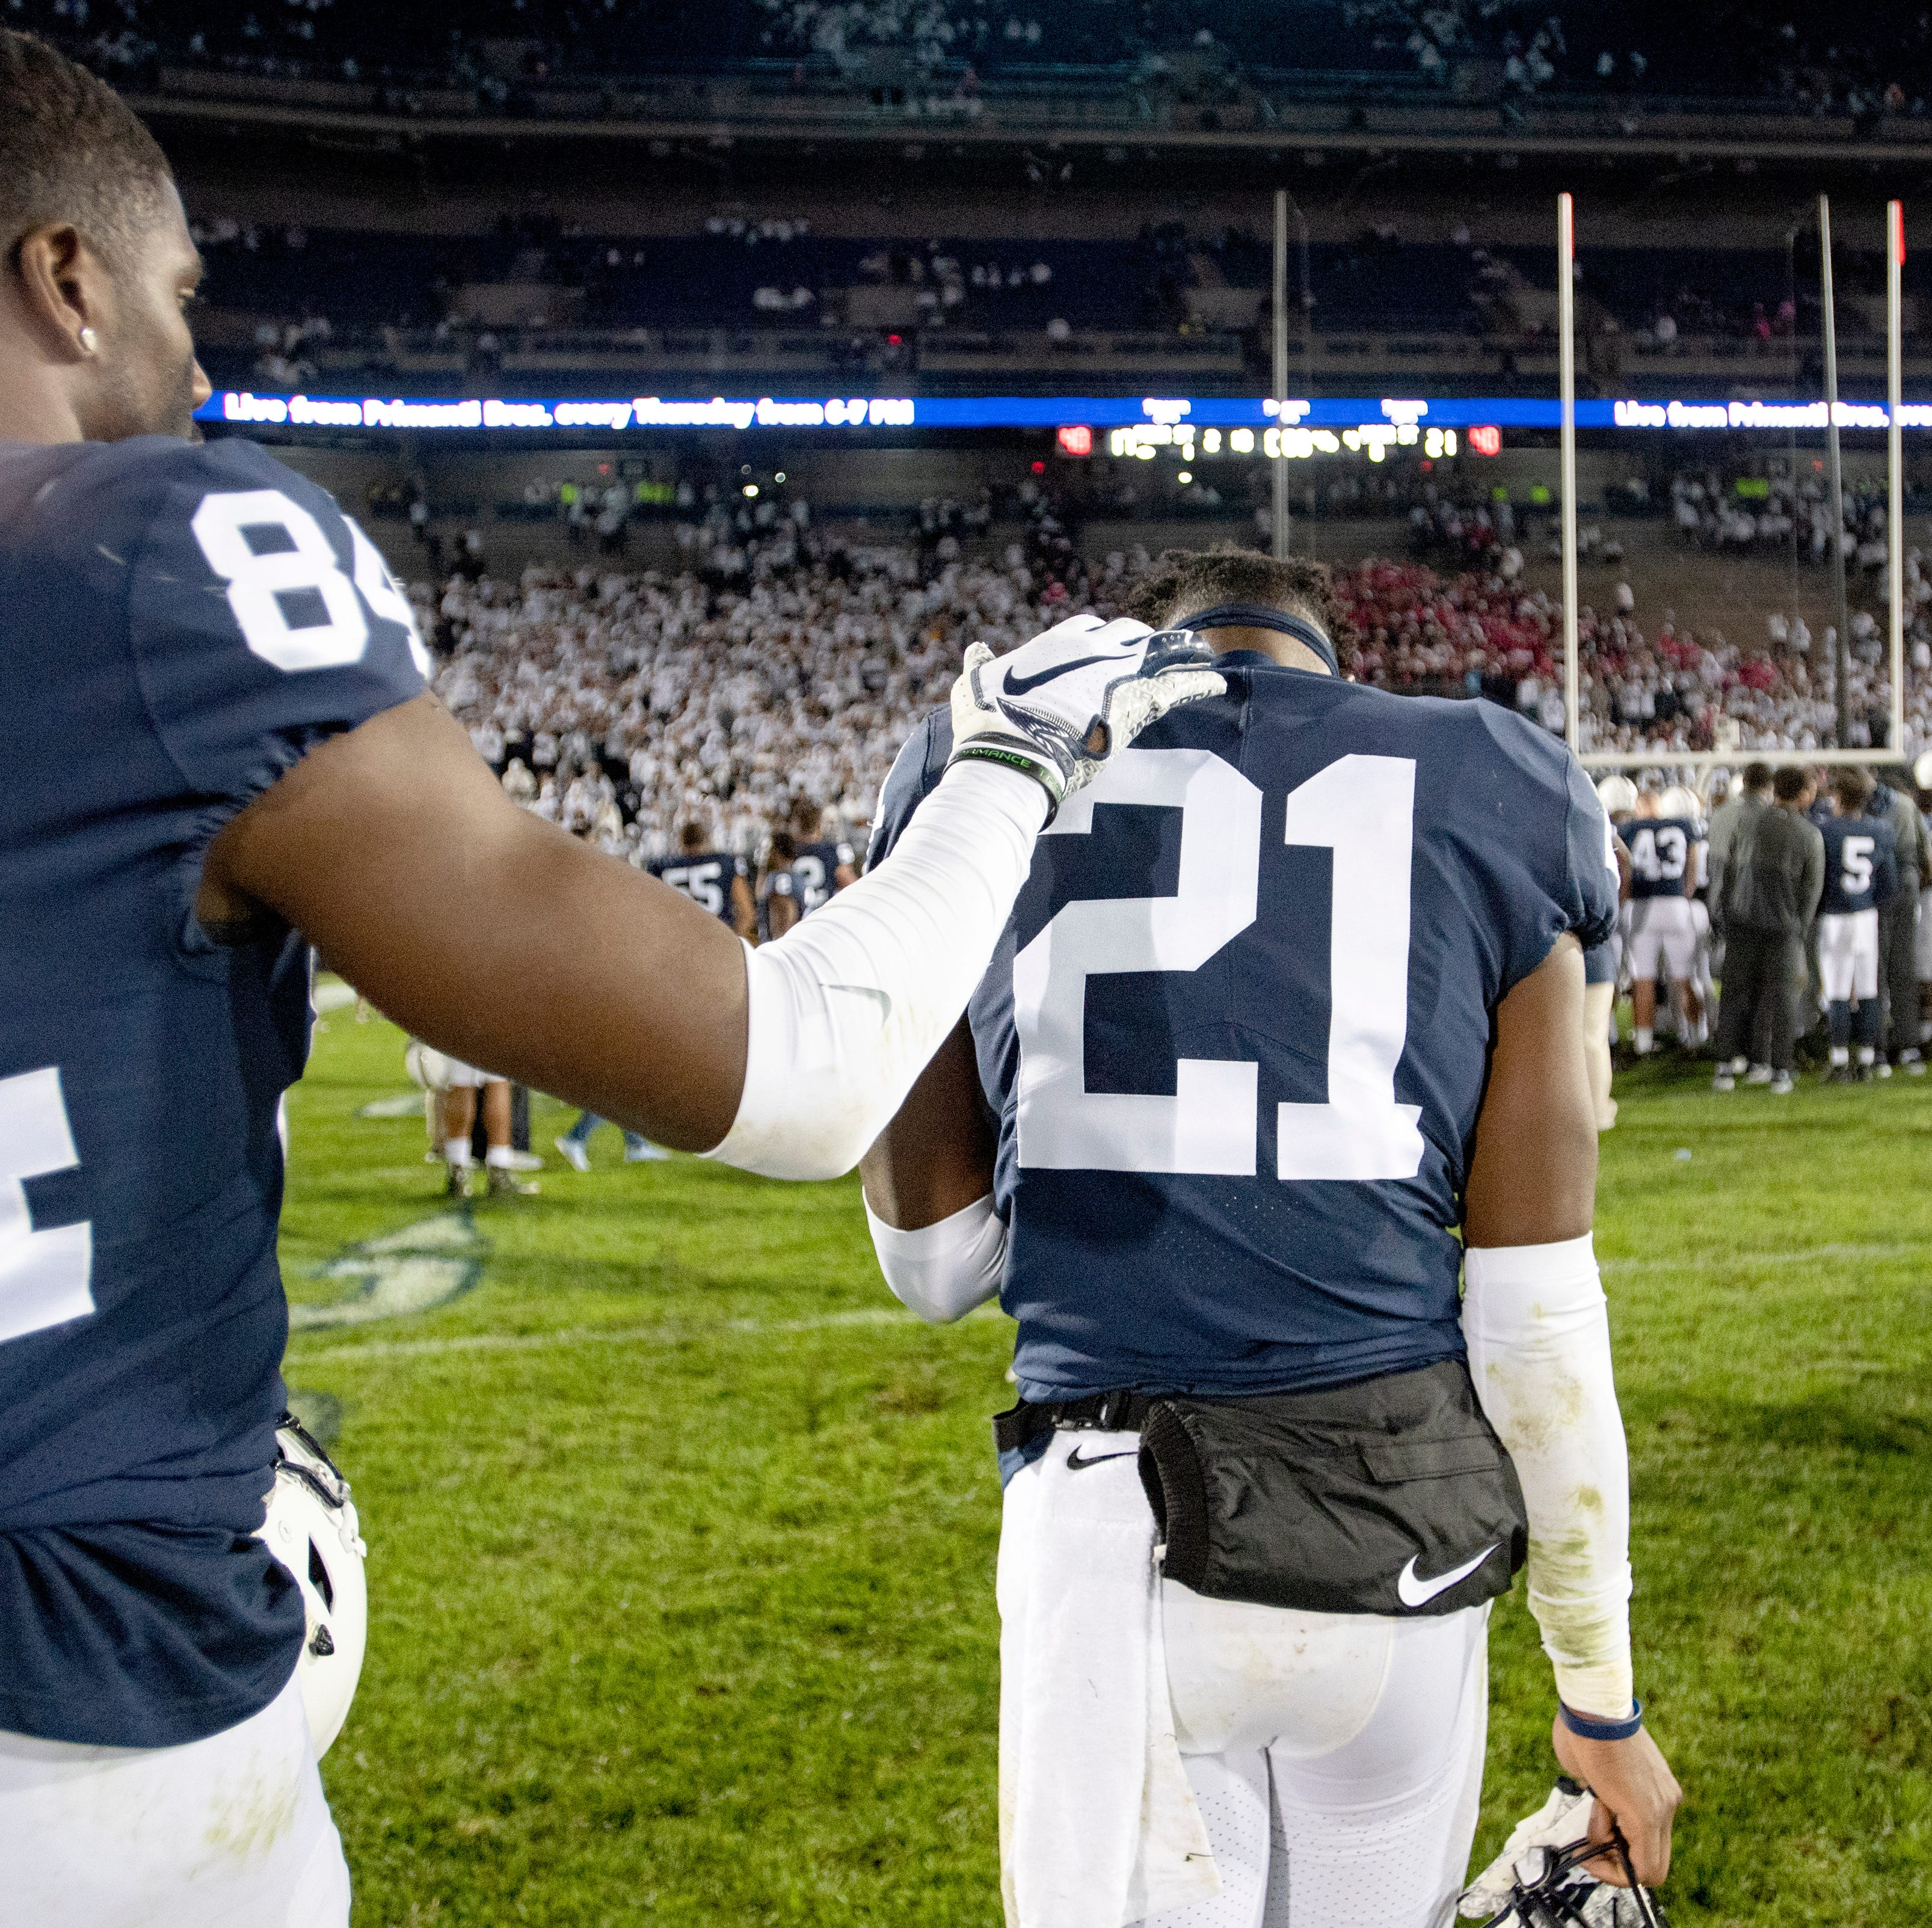 Penn State at a crossroads: Saving a season starts with fixing the offense